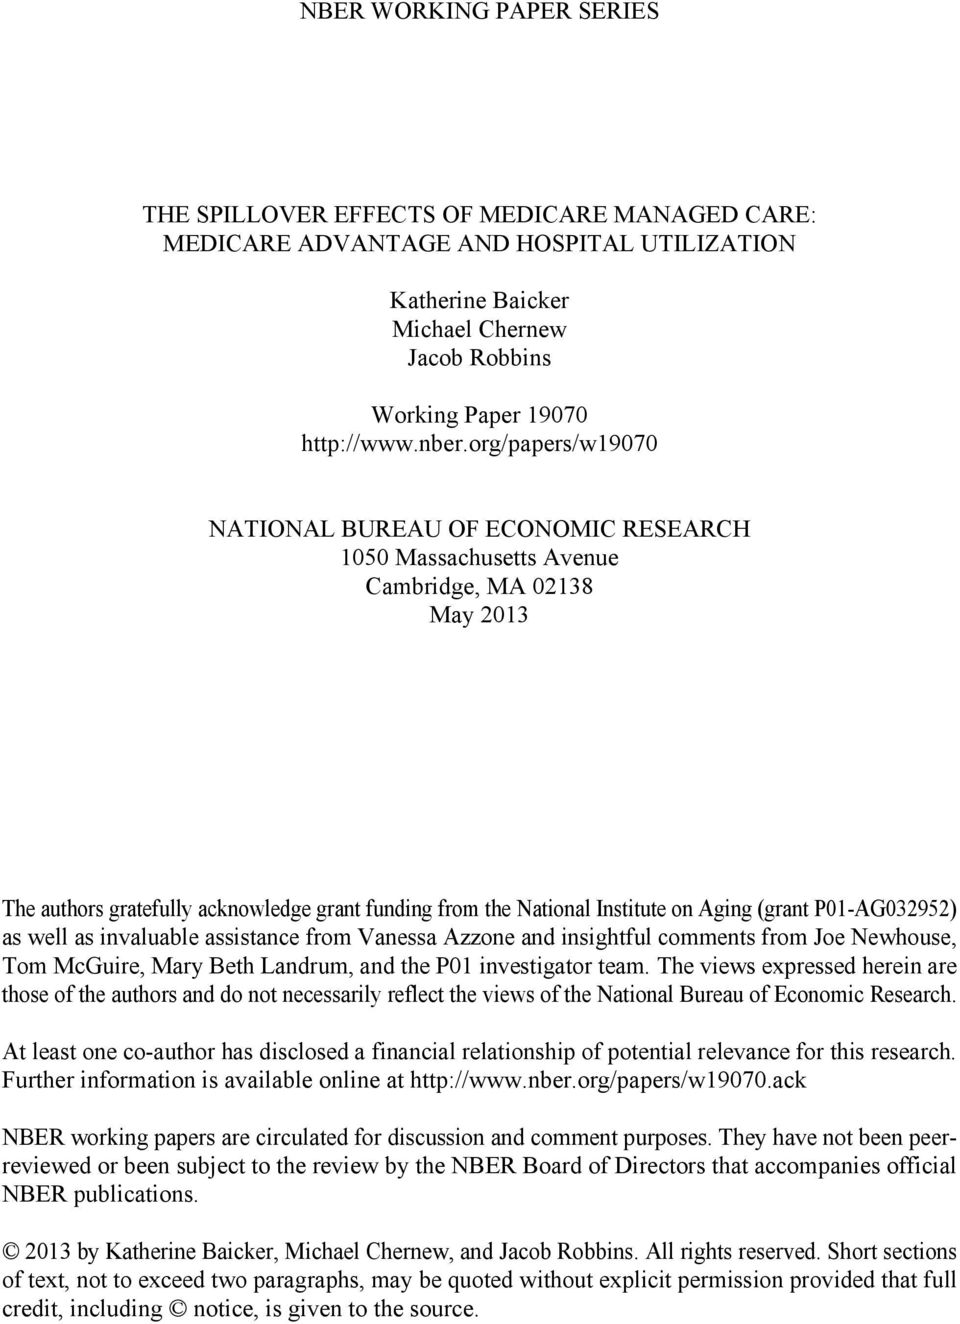 national bureau of economic research working paper series Nber working paper series disagreement about inflation expectations national bureau of economic research.